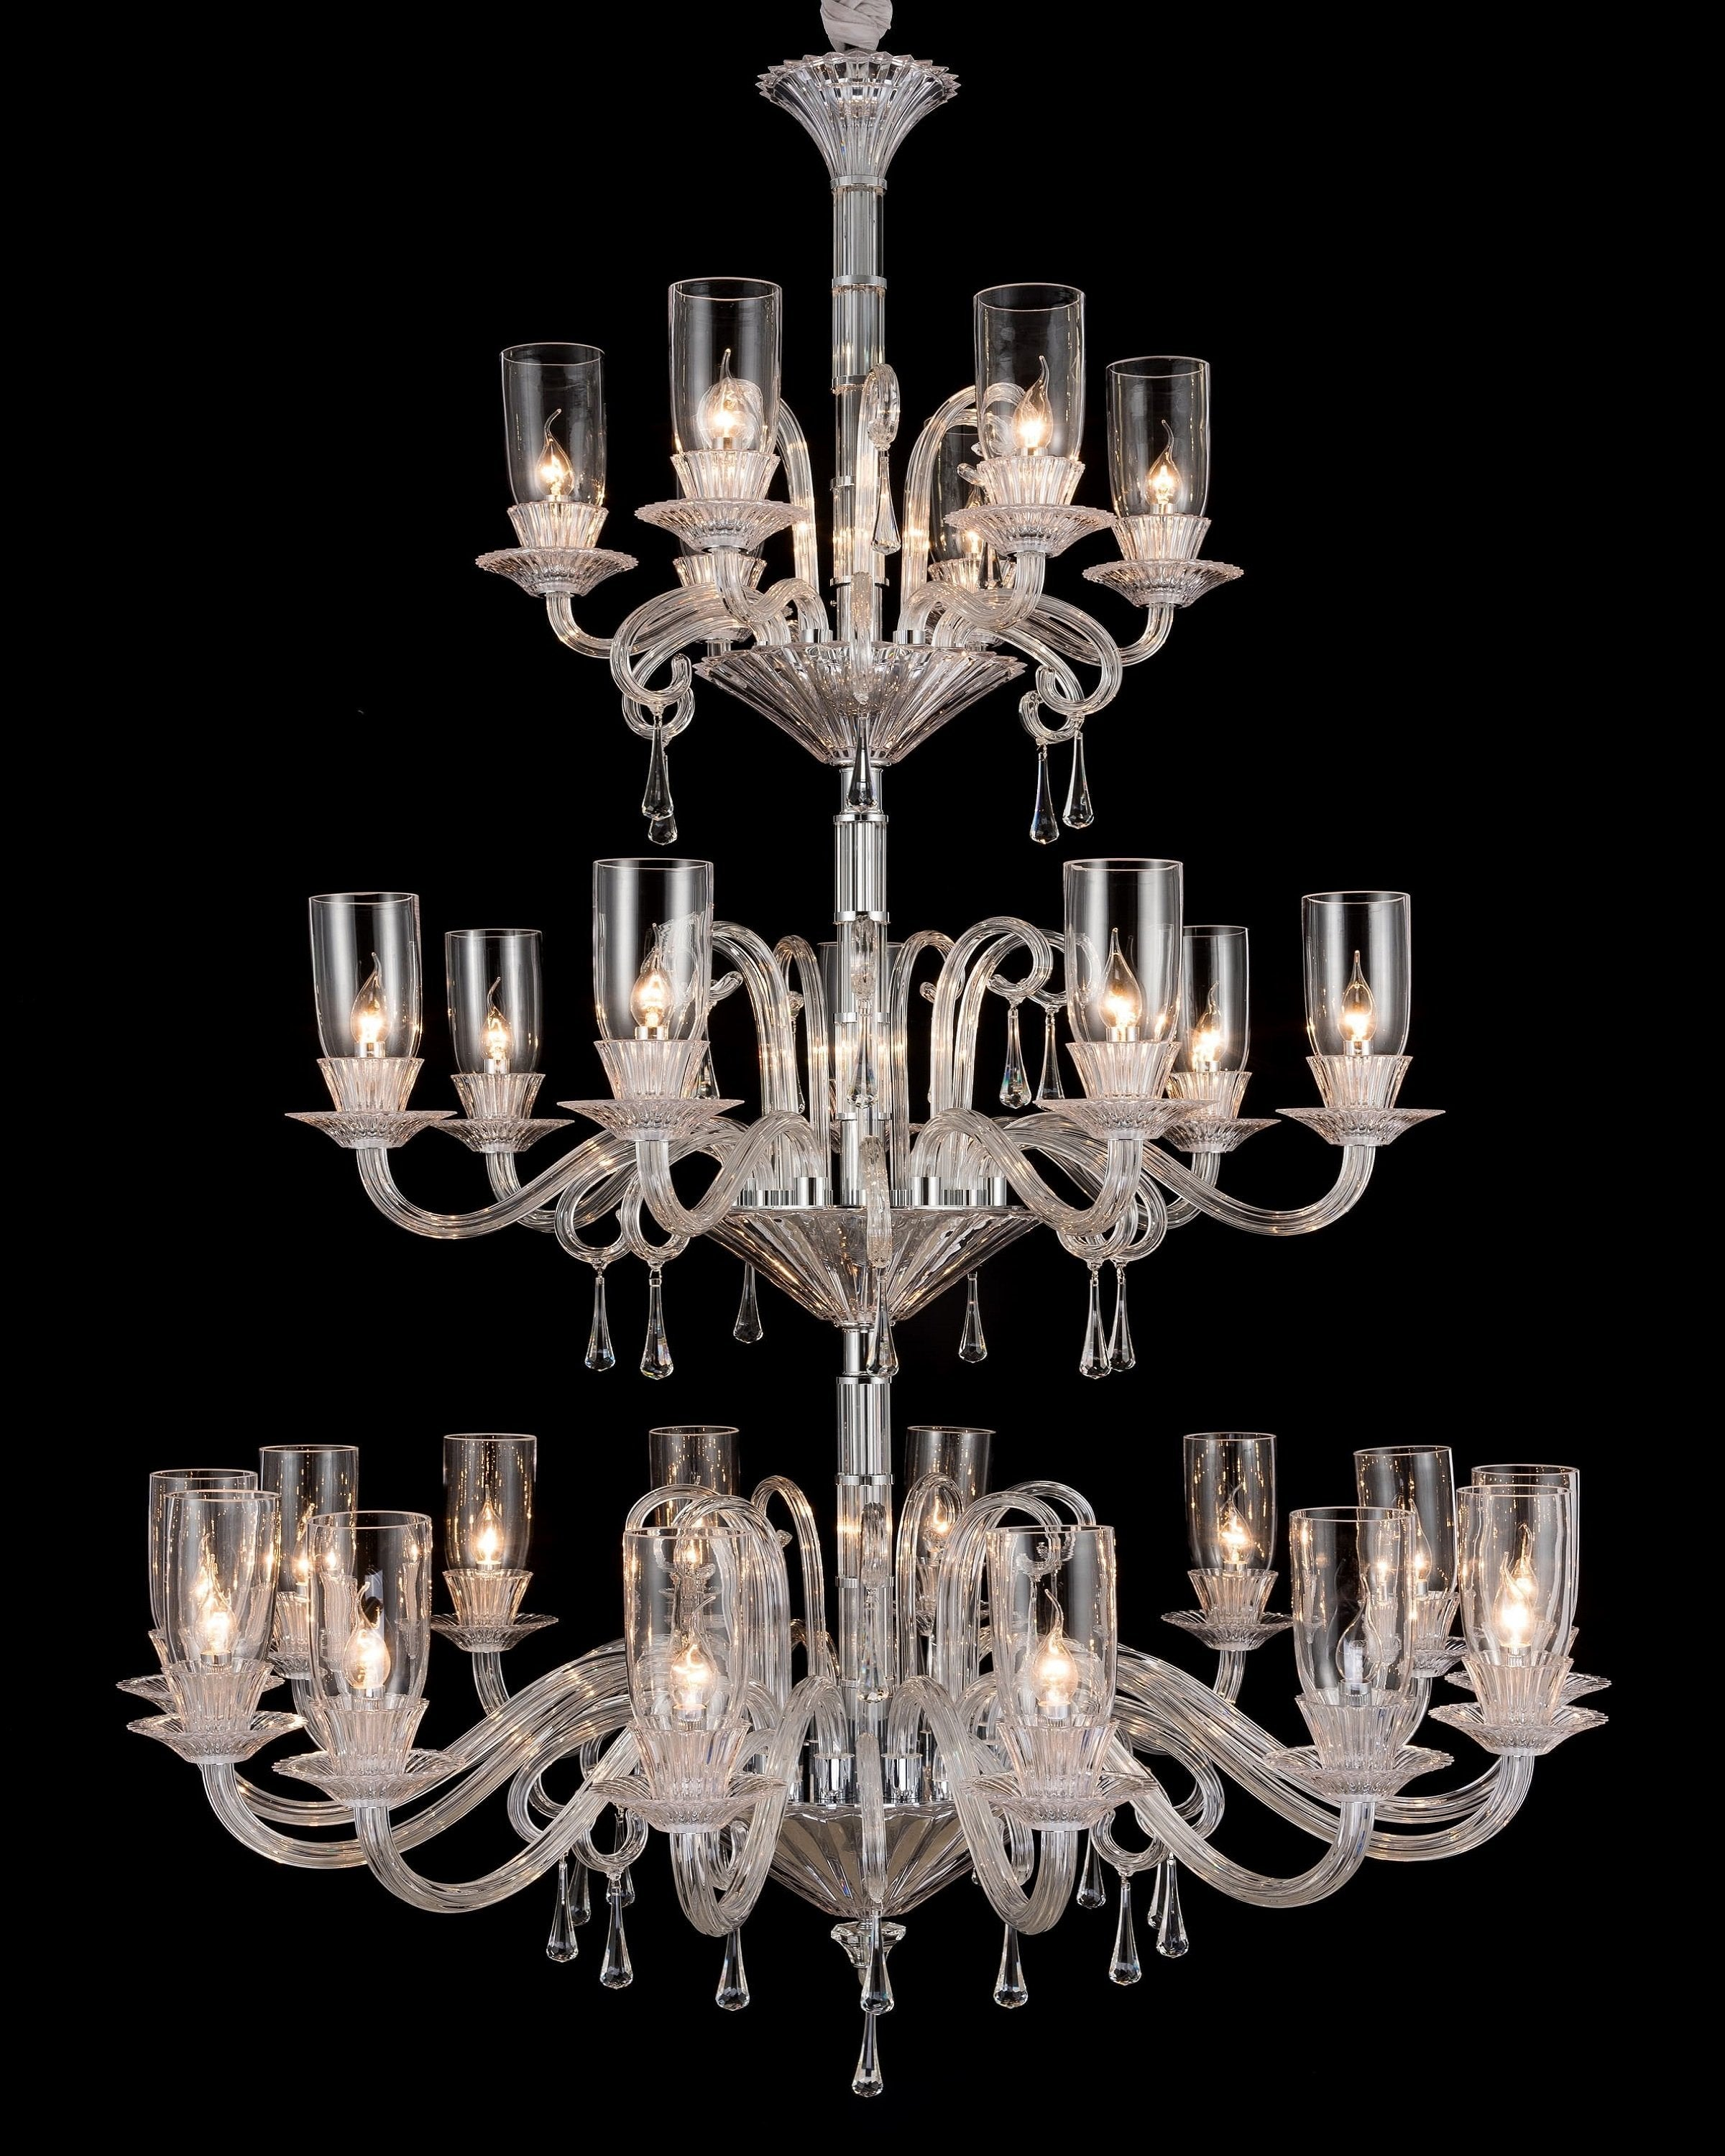 Luxury fusion crystal chandelier | ANGIE HOMES